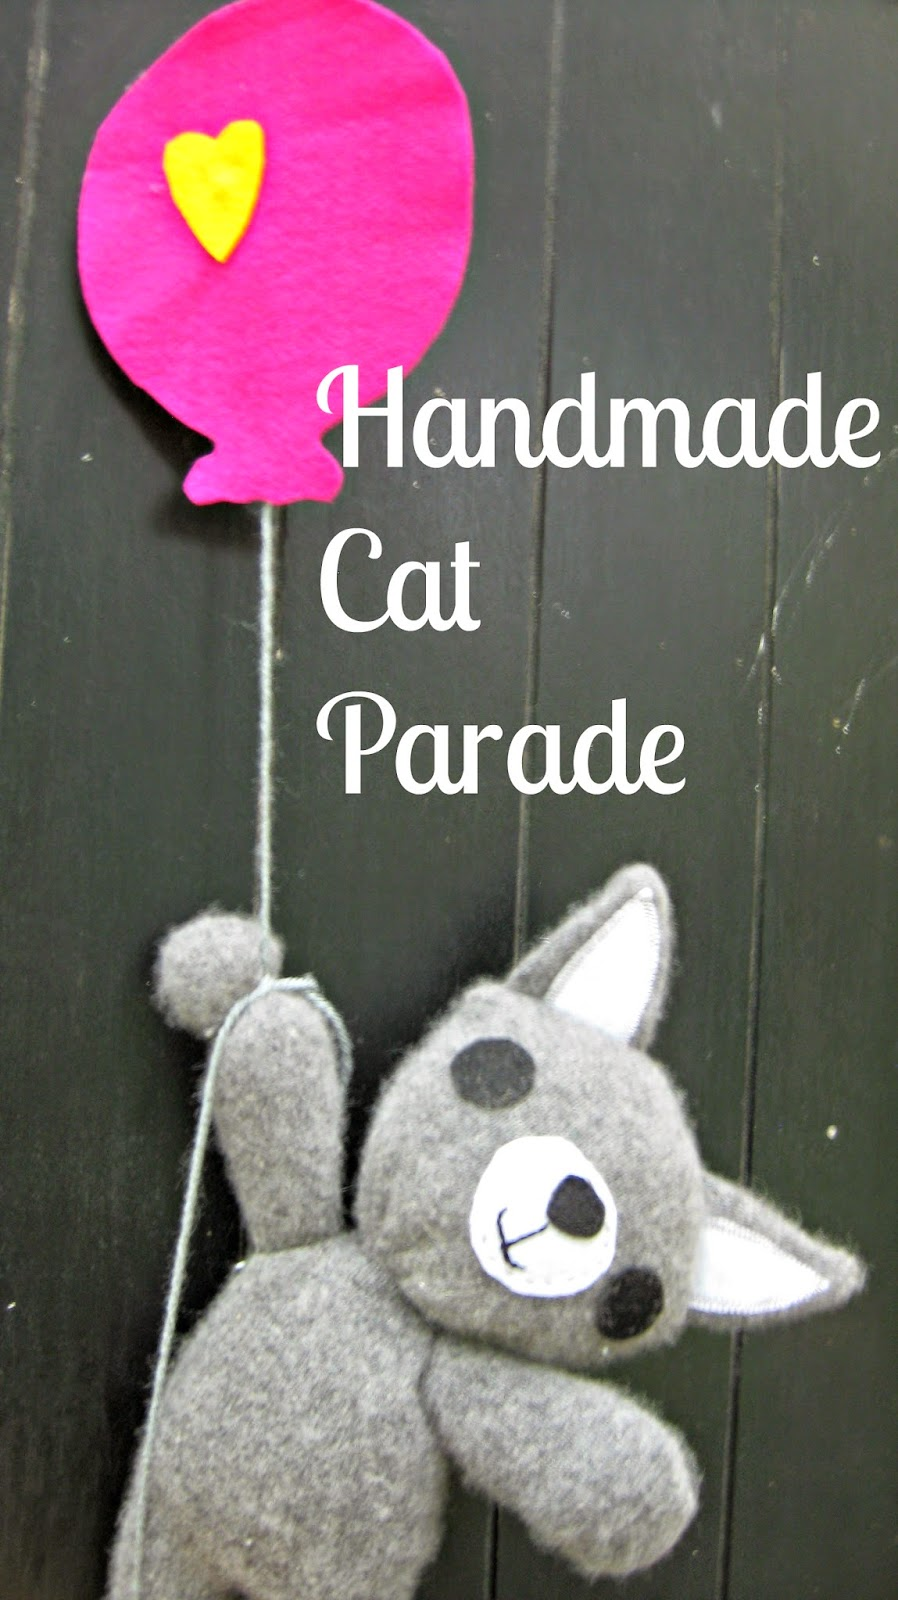 https://www.etsy.com/shop/HandmadeCatParade?ref=hdr_shop_menu